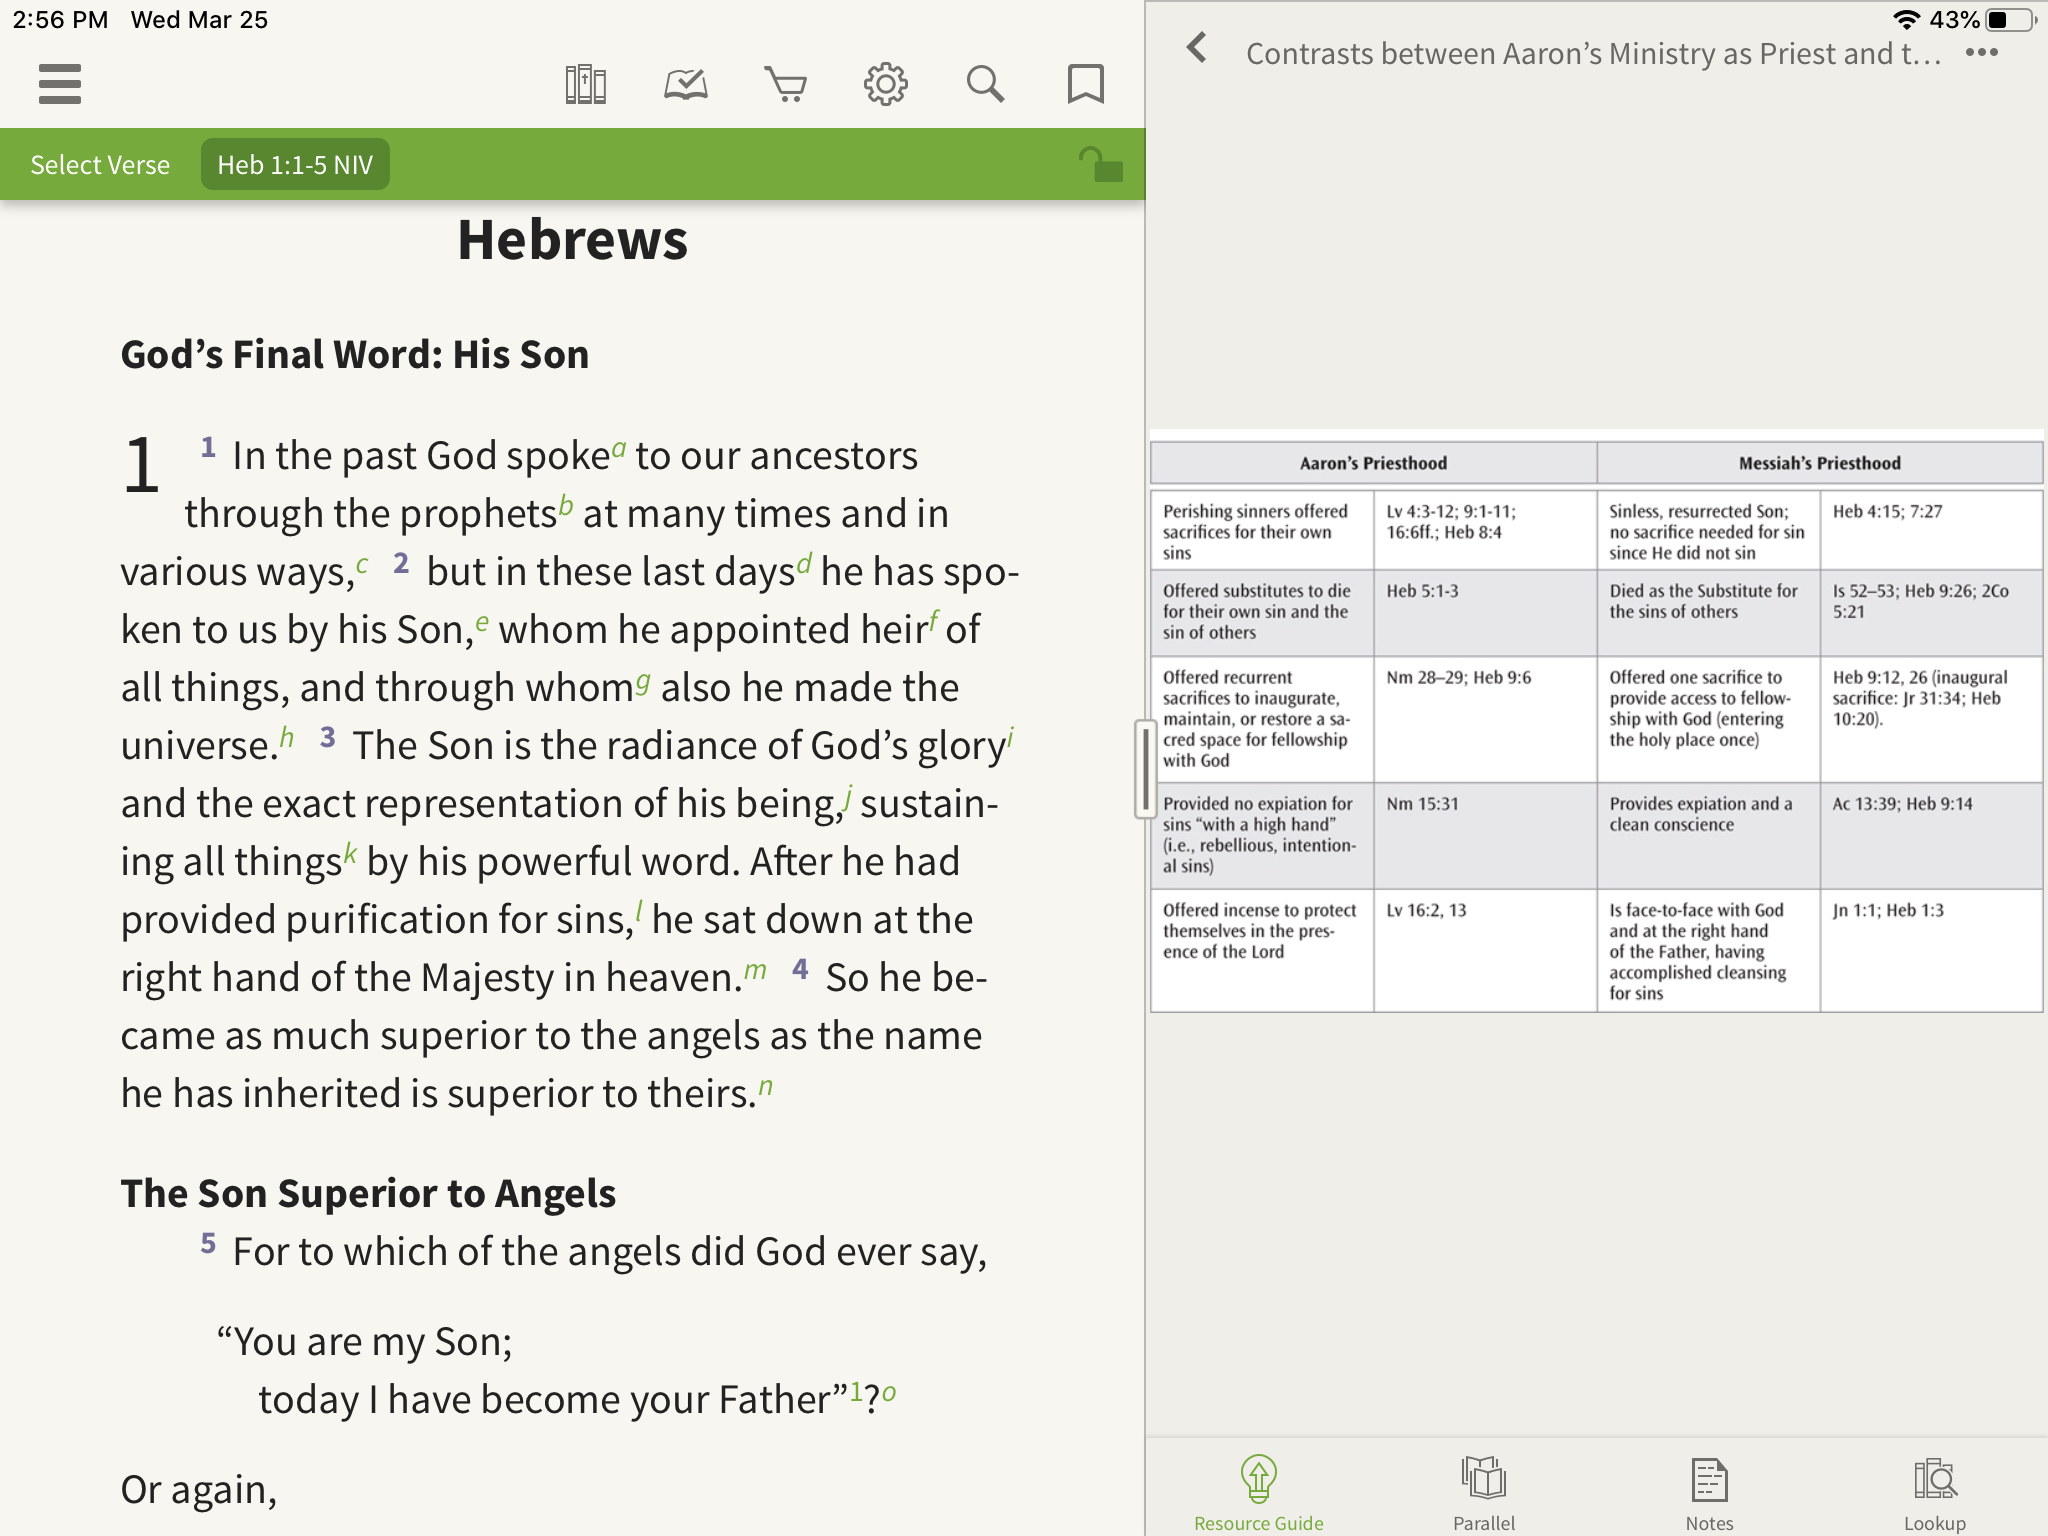 an image of charts in the Olive Tree Bible App covering Hebrews 1